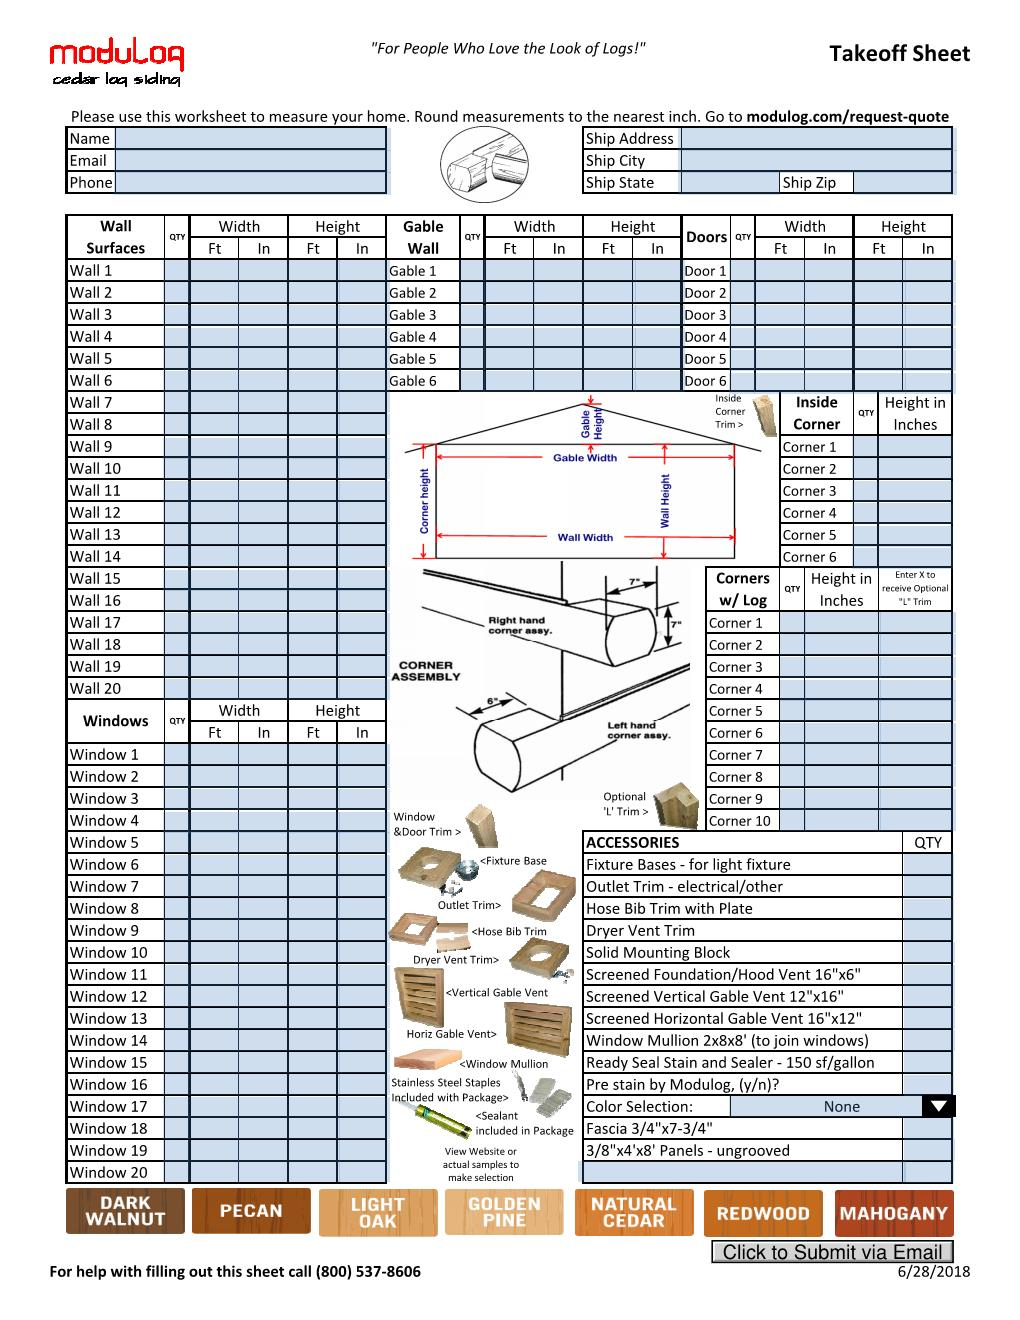 worksheet for measuring your home